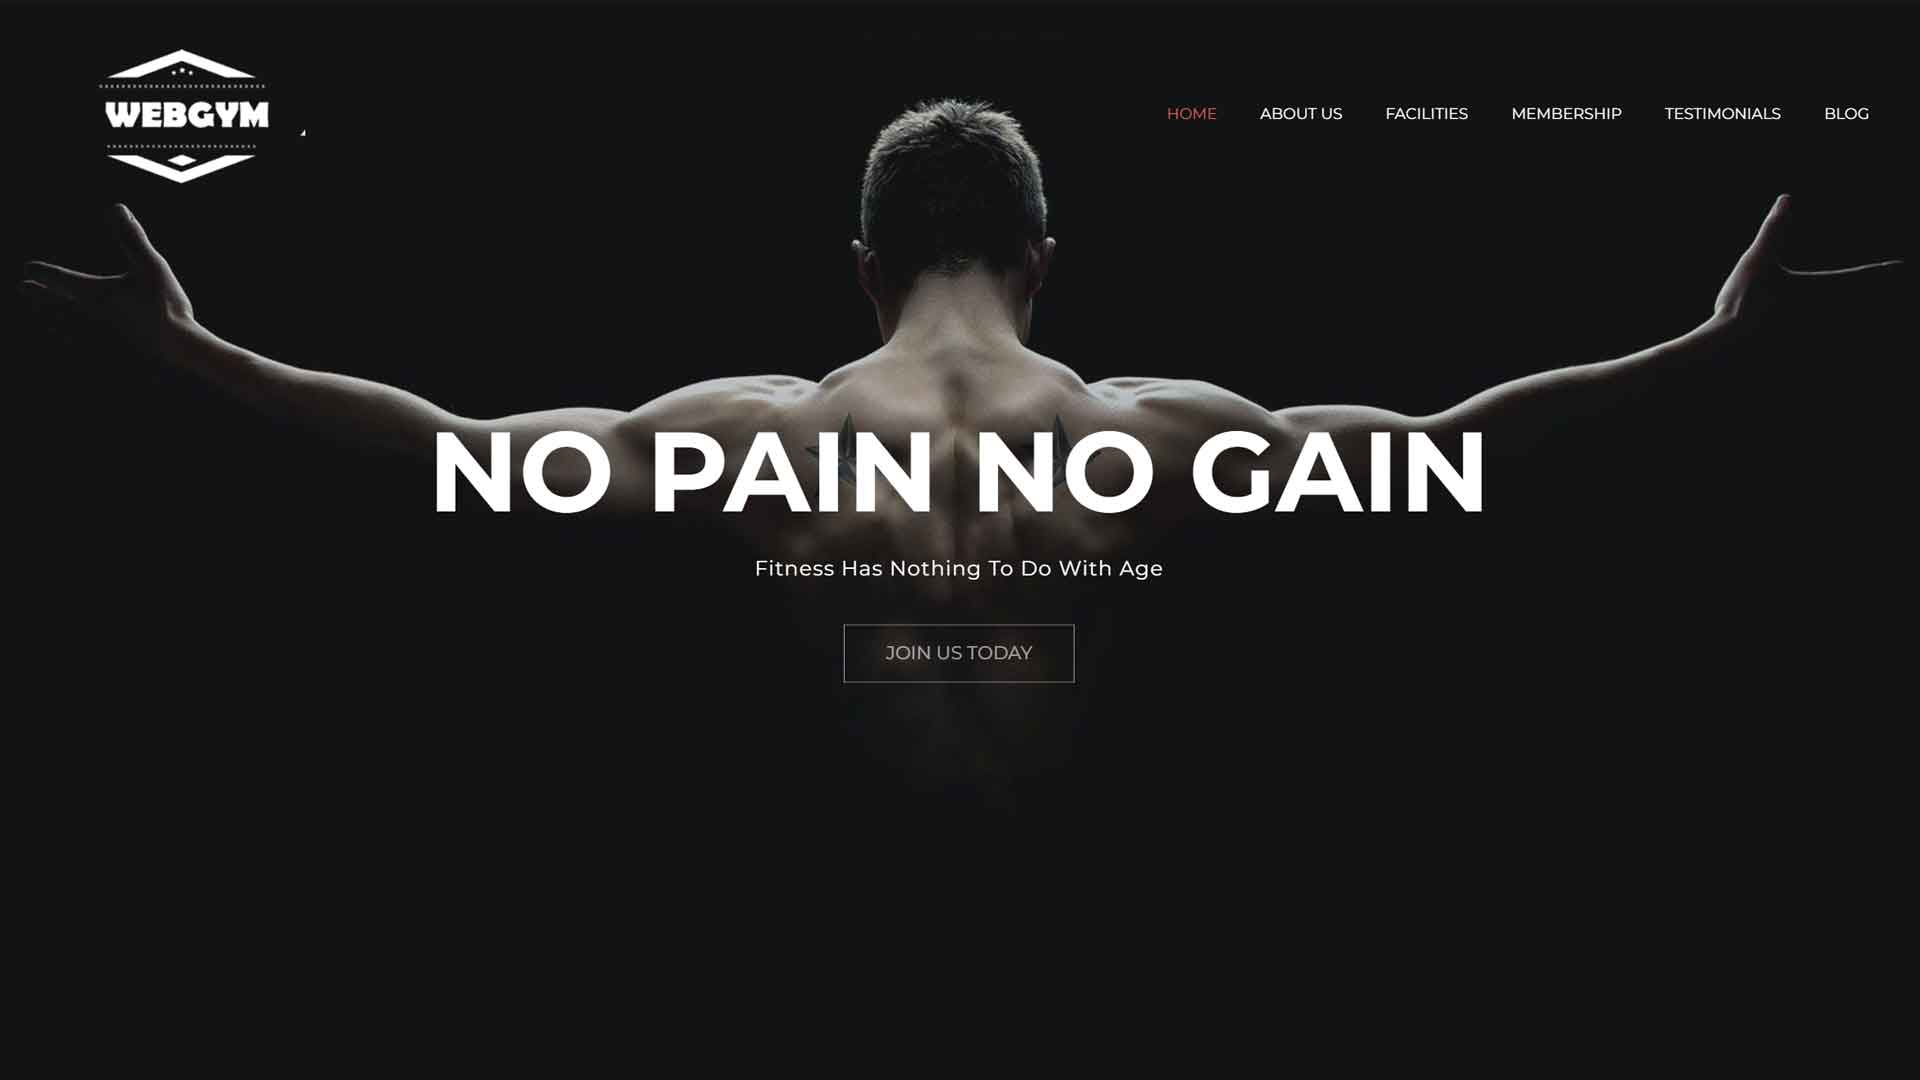 Sports and Fitness Website Design Image